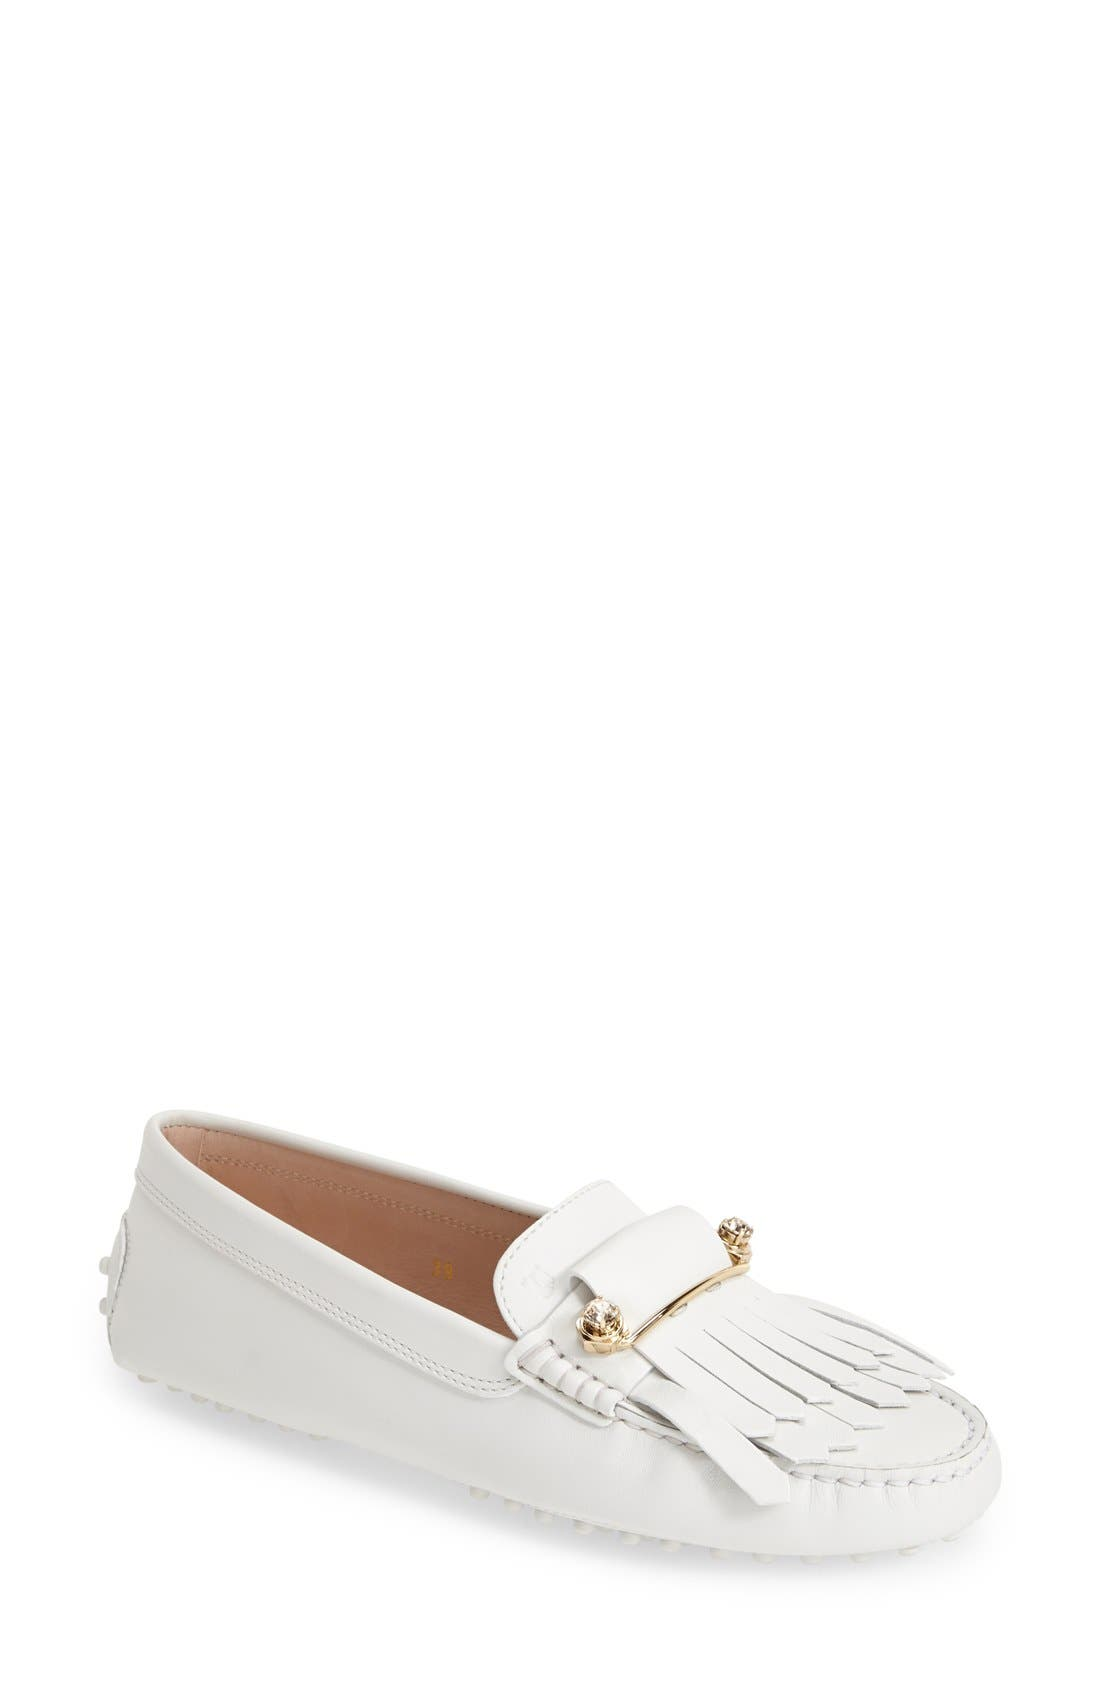 TOD'S,                             'Gommini' Crystal Embellished Fringed Leather Driving Moccasin,                             Main thumbnail 1, color,                             100